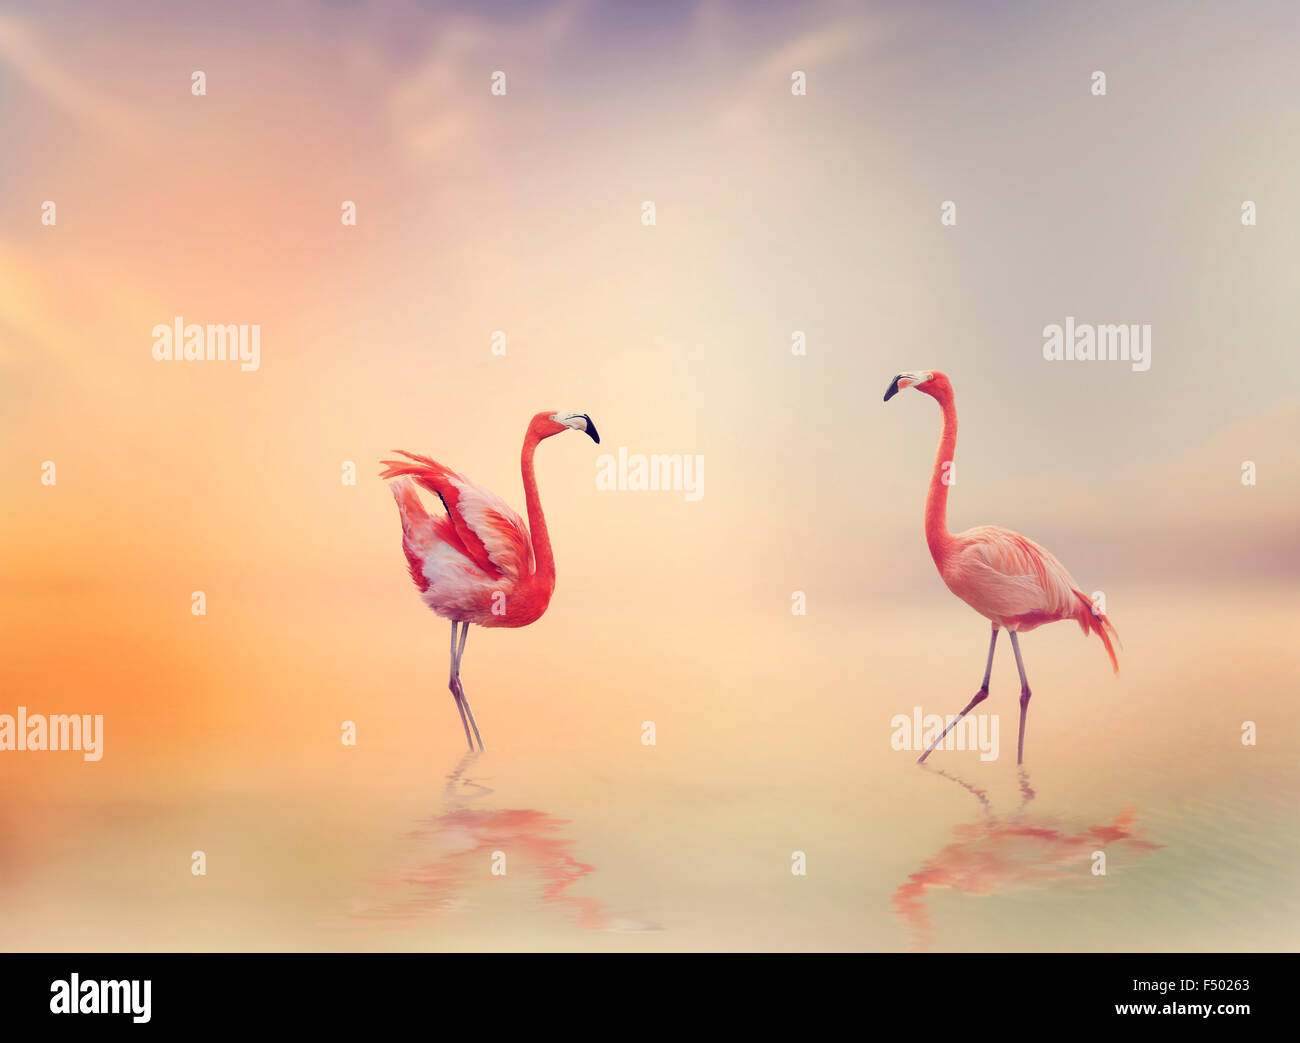 Two Flamingos in The Lake at Sunset - Stock Image